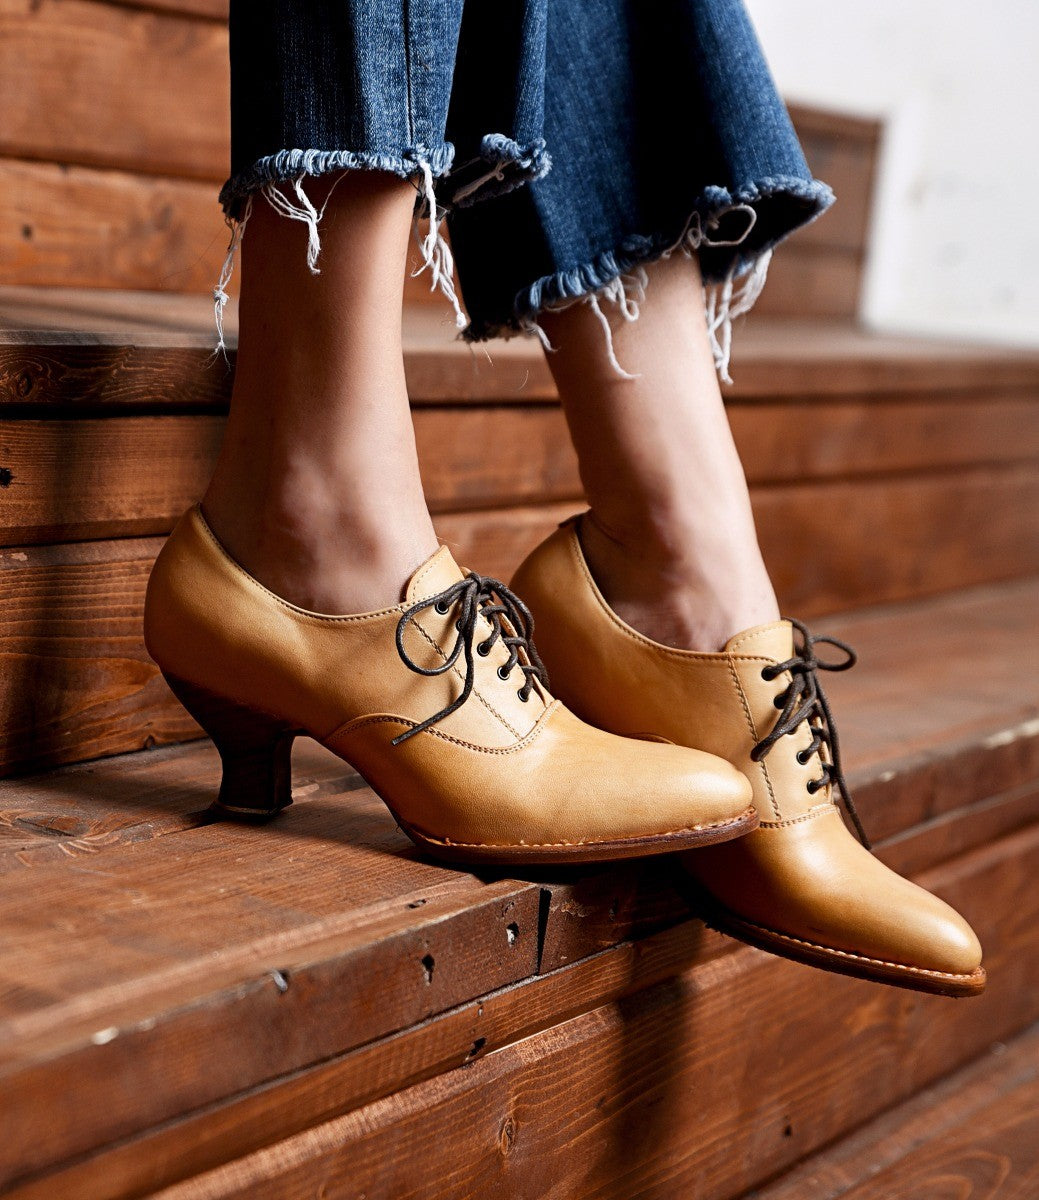 Women's 1920s Shoe Styles and History Victorian Style Leather Lace-Up Shoes in Natural Rustic $195.00 AT vintagedancer.com